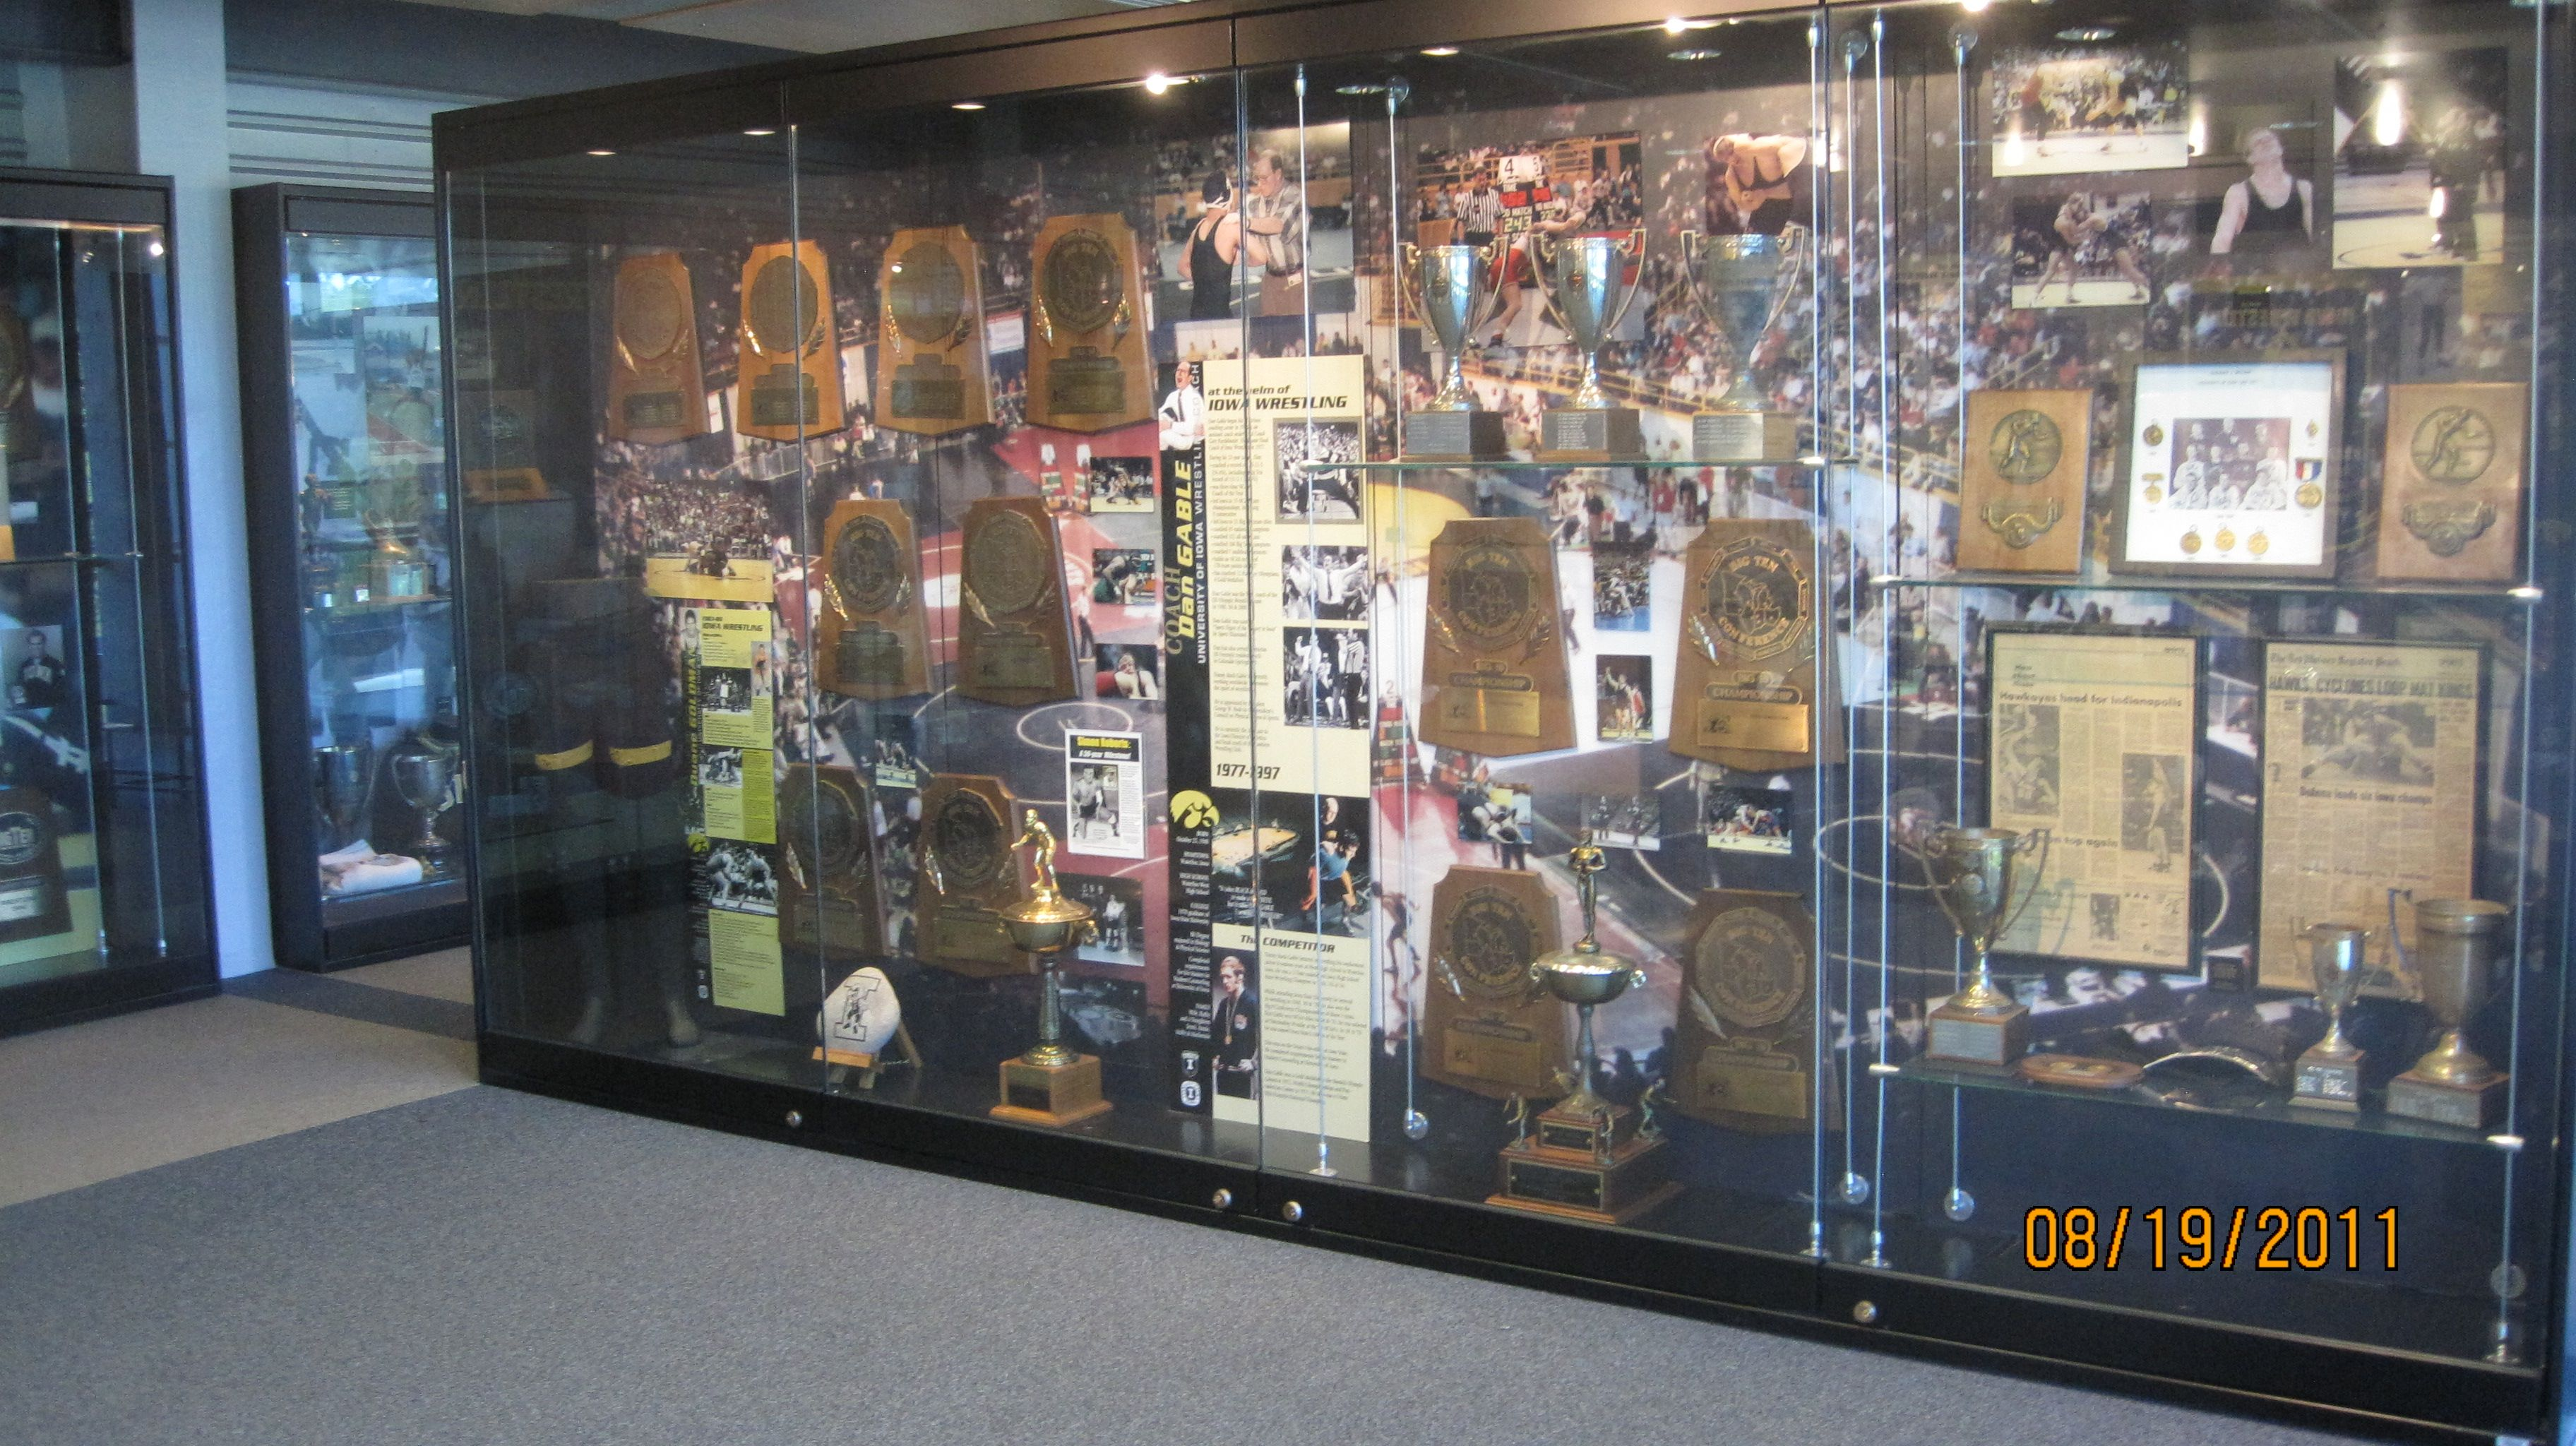 A Second Iowa Wrestling Exhibit That Hold Many Trophies And